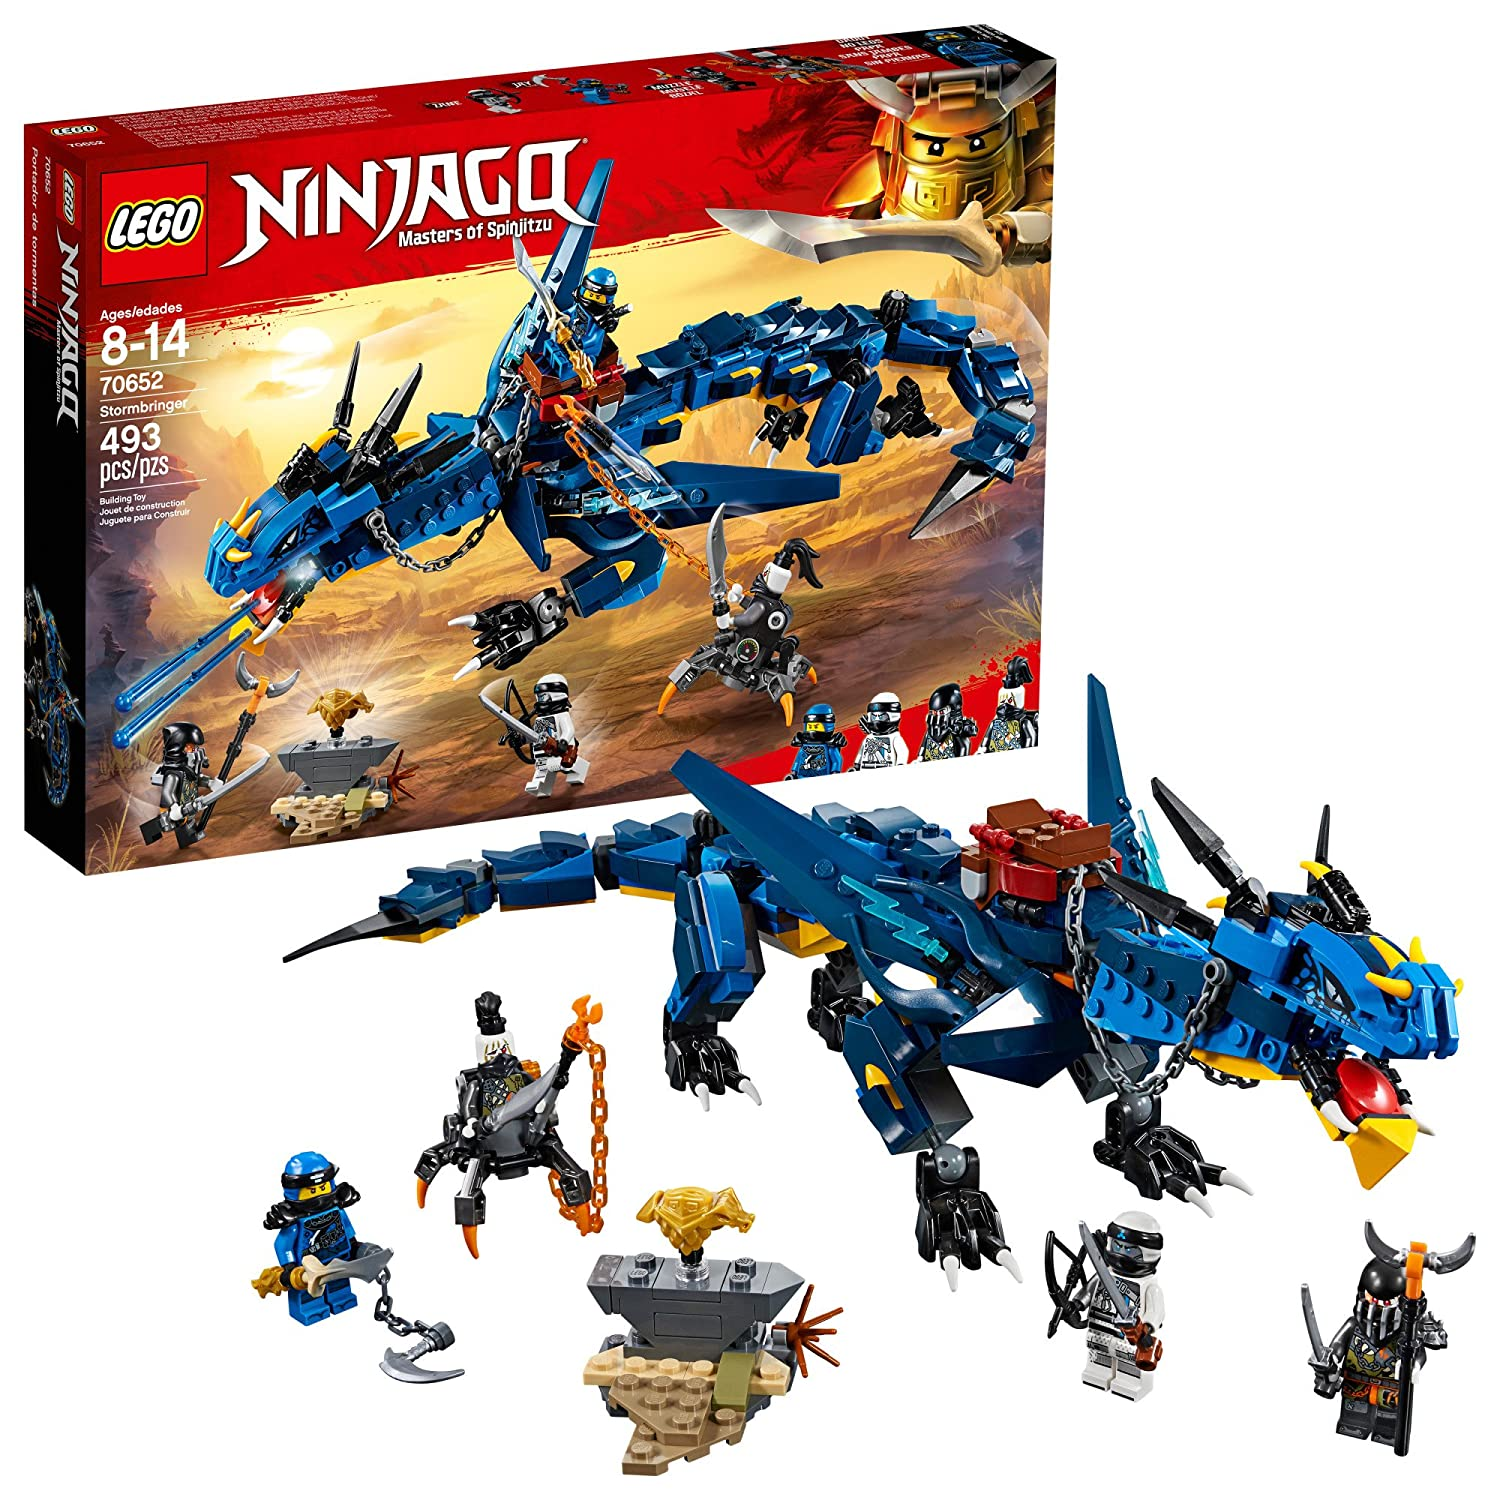 LEGO NINJAGO Masters of Spinjitzu: Stormbringer 70652 Building Kit (493 Piece) 6212692